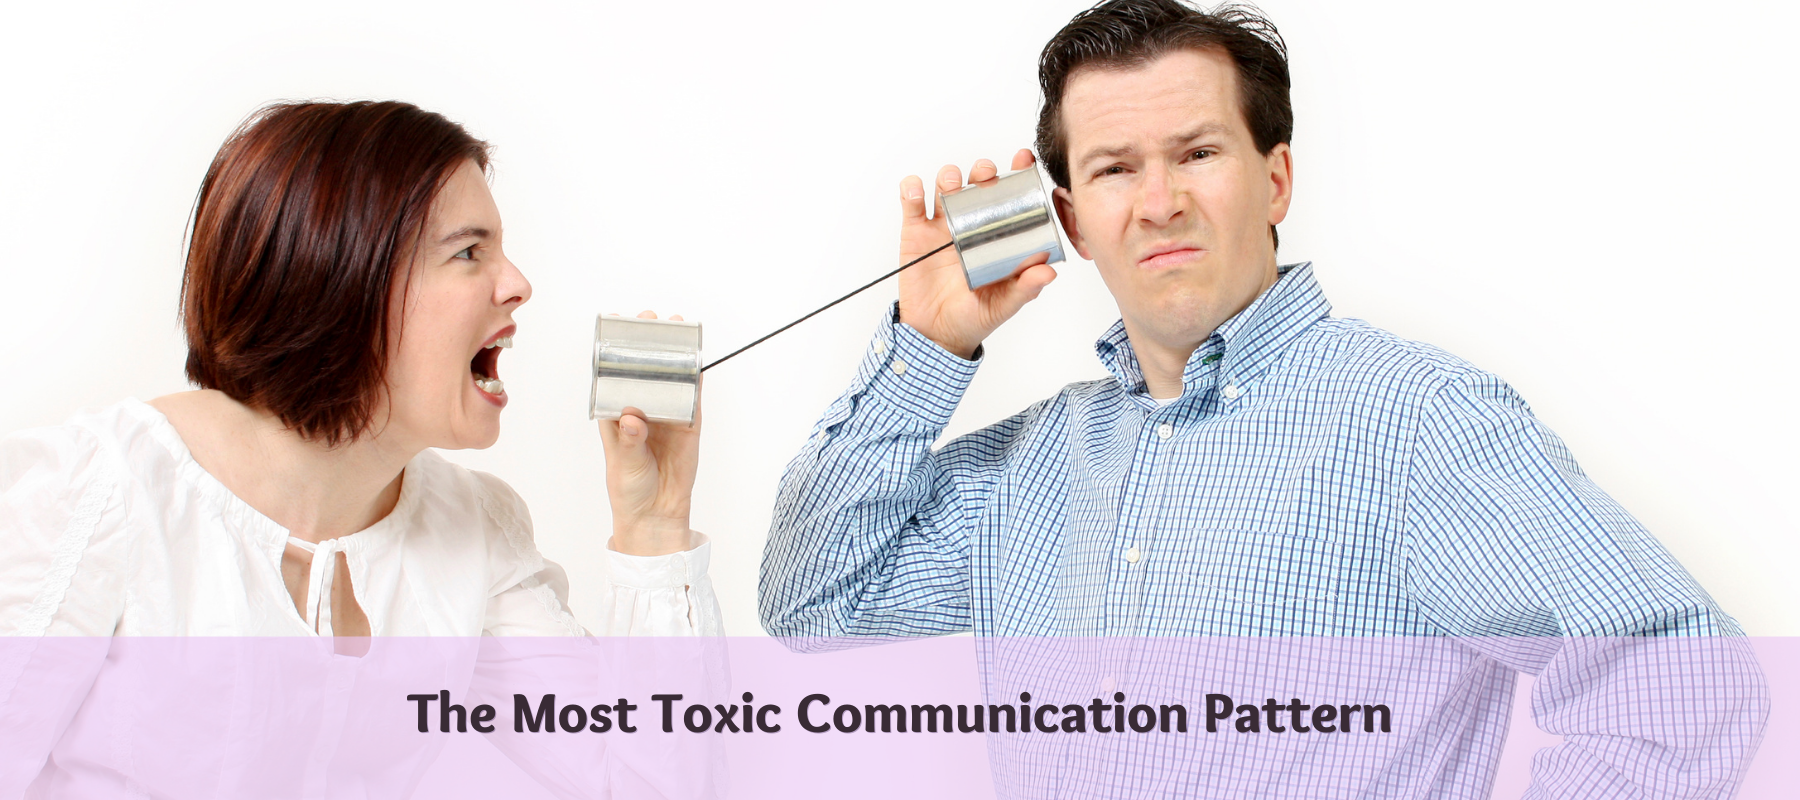 What is the most Toxic Communication Pattern